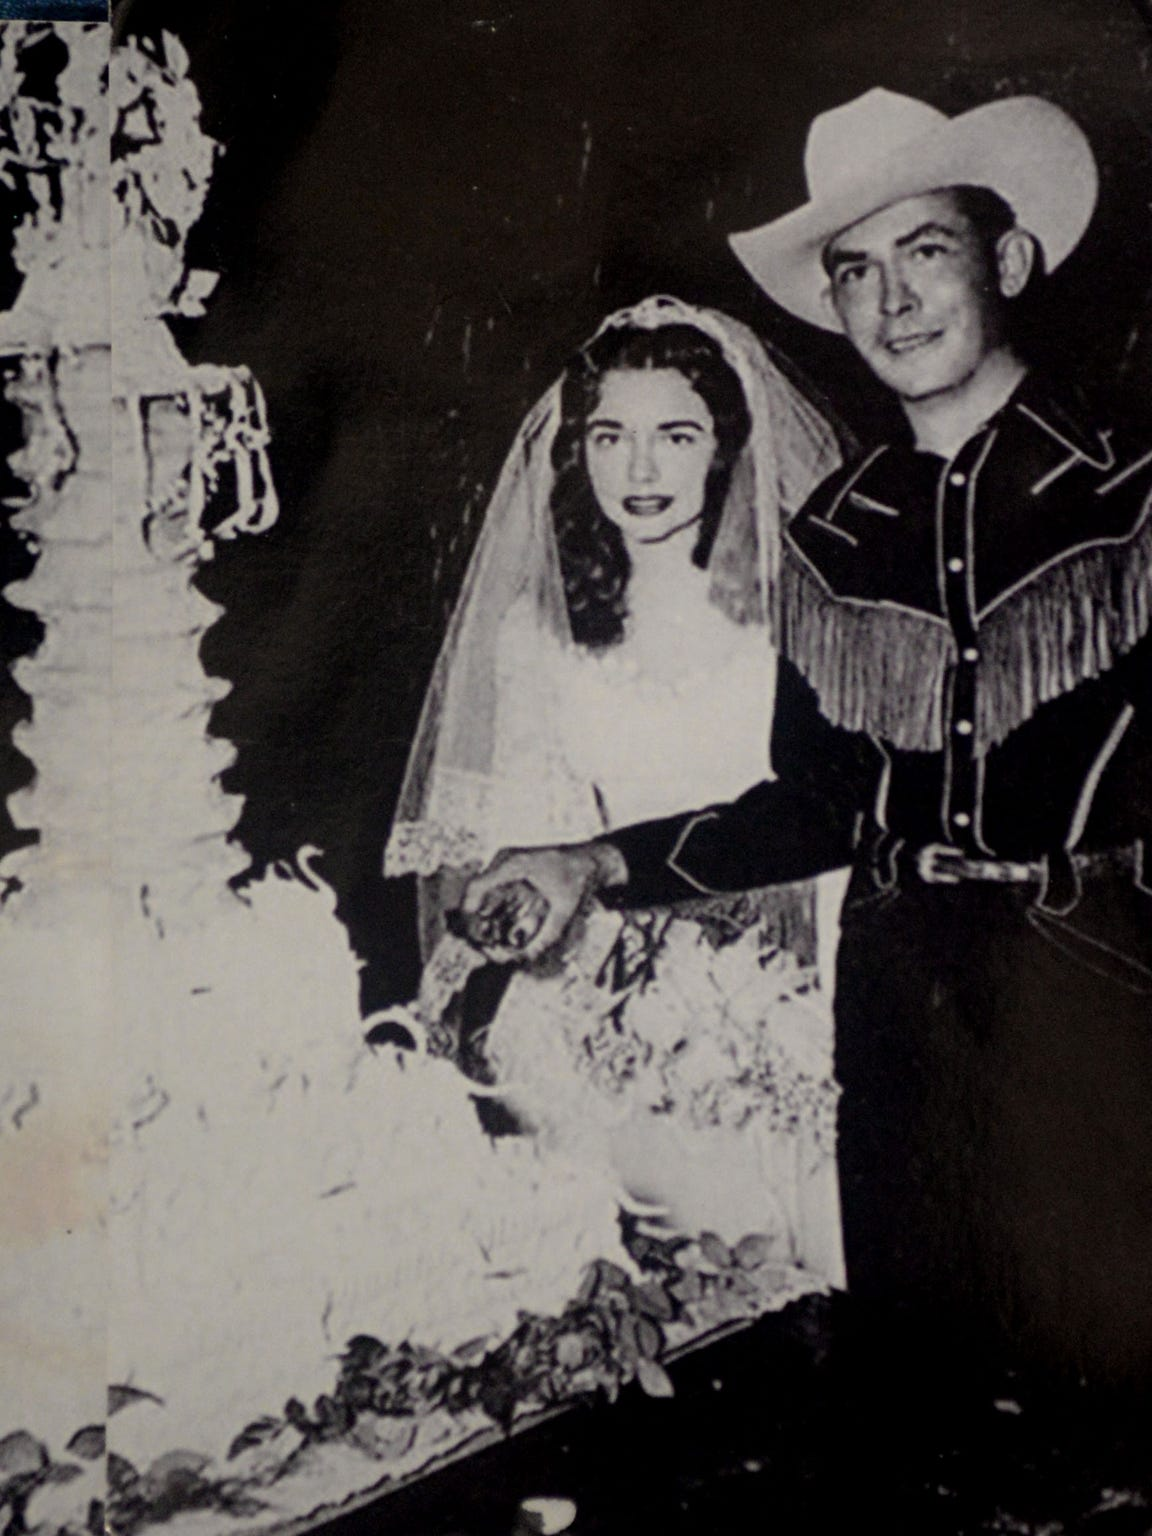 The wedding photo of Hank Williams and Billie Jean